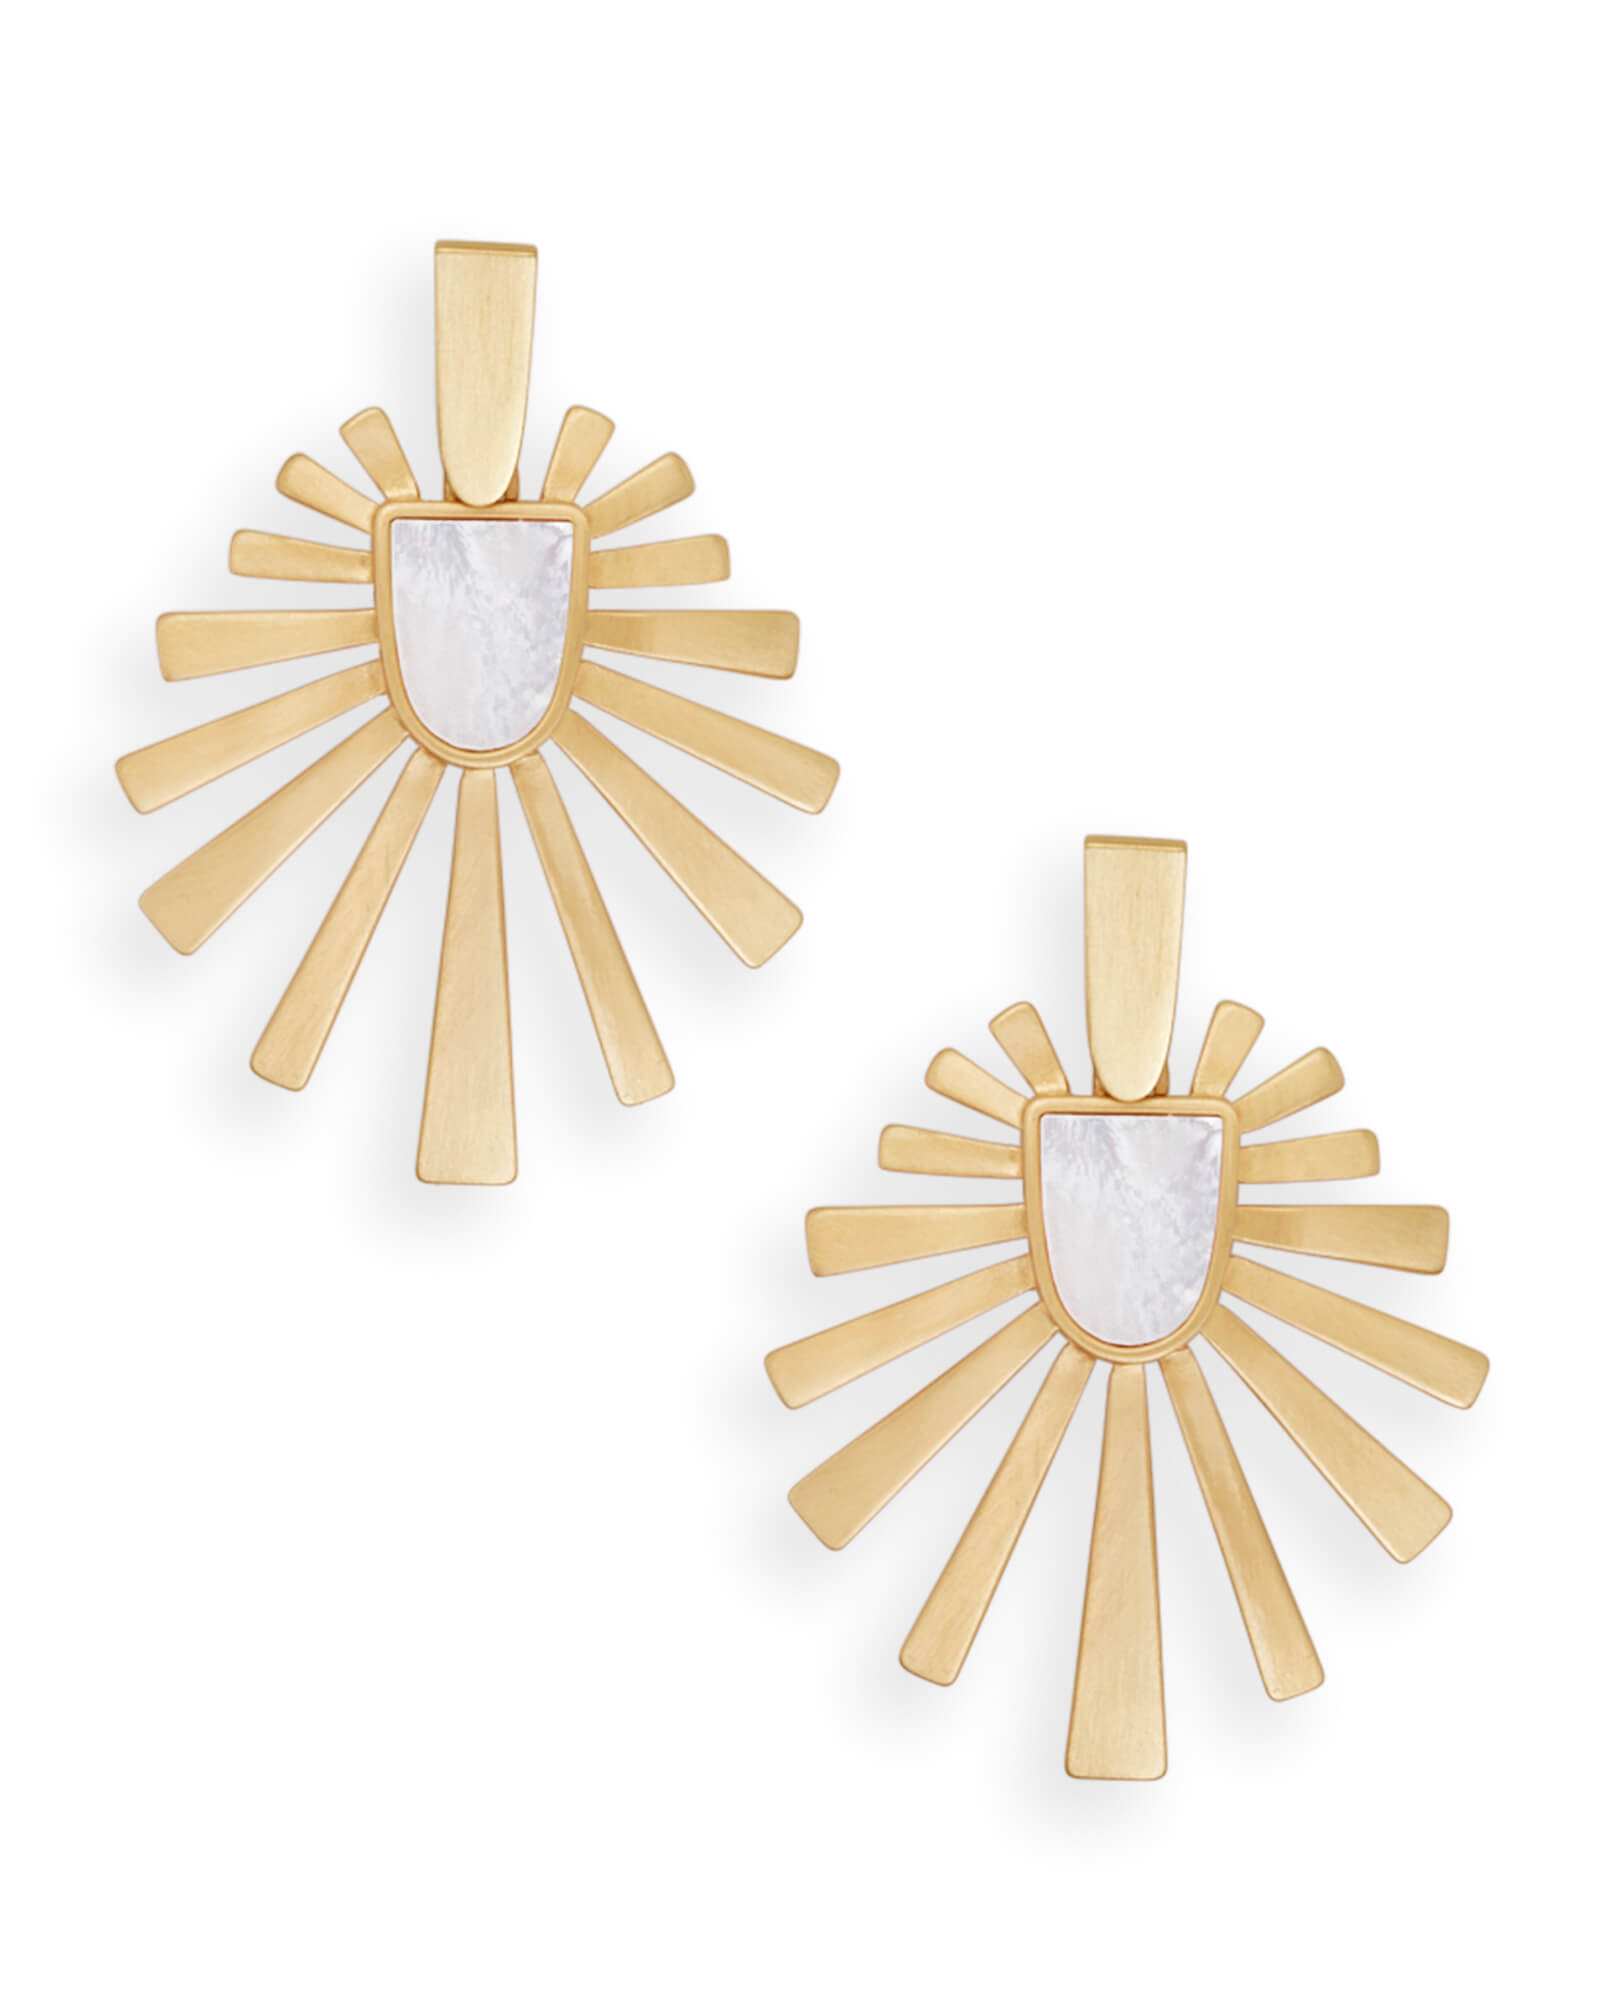 Cambria Statement Earrings in Gold